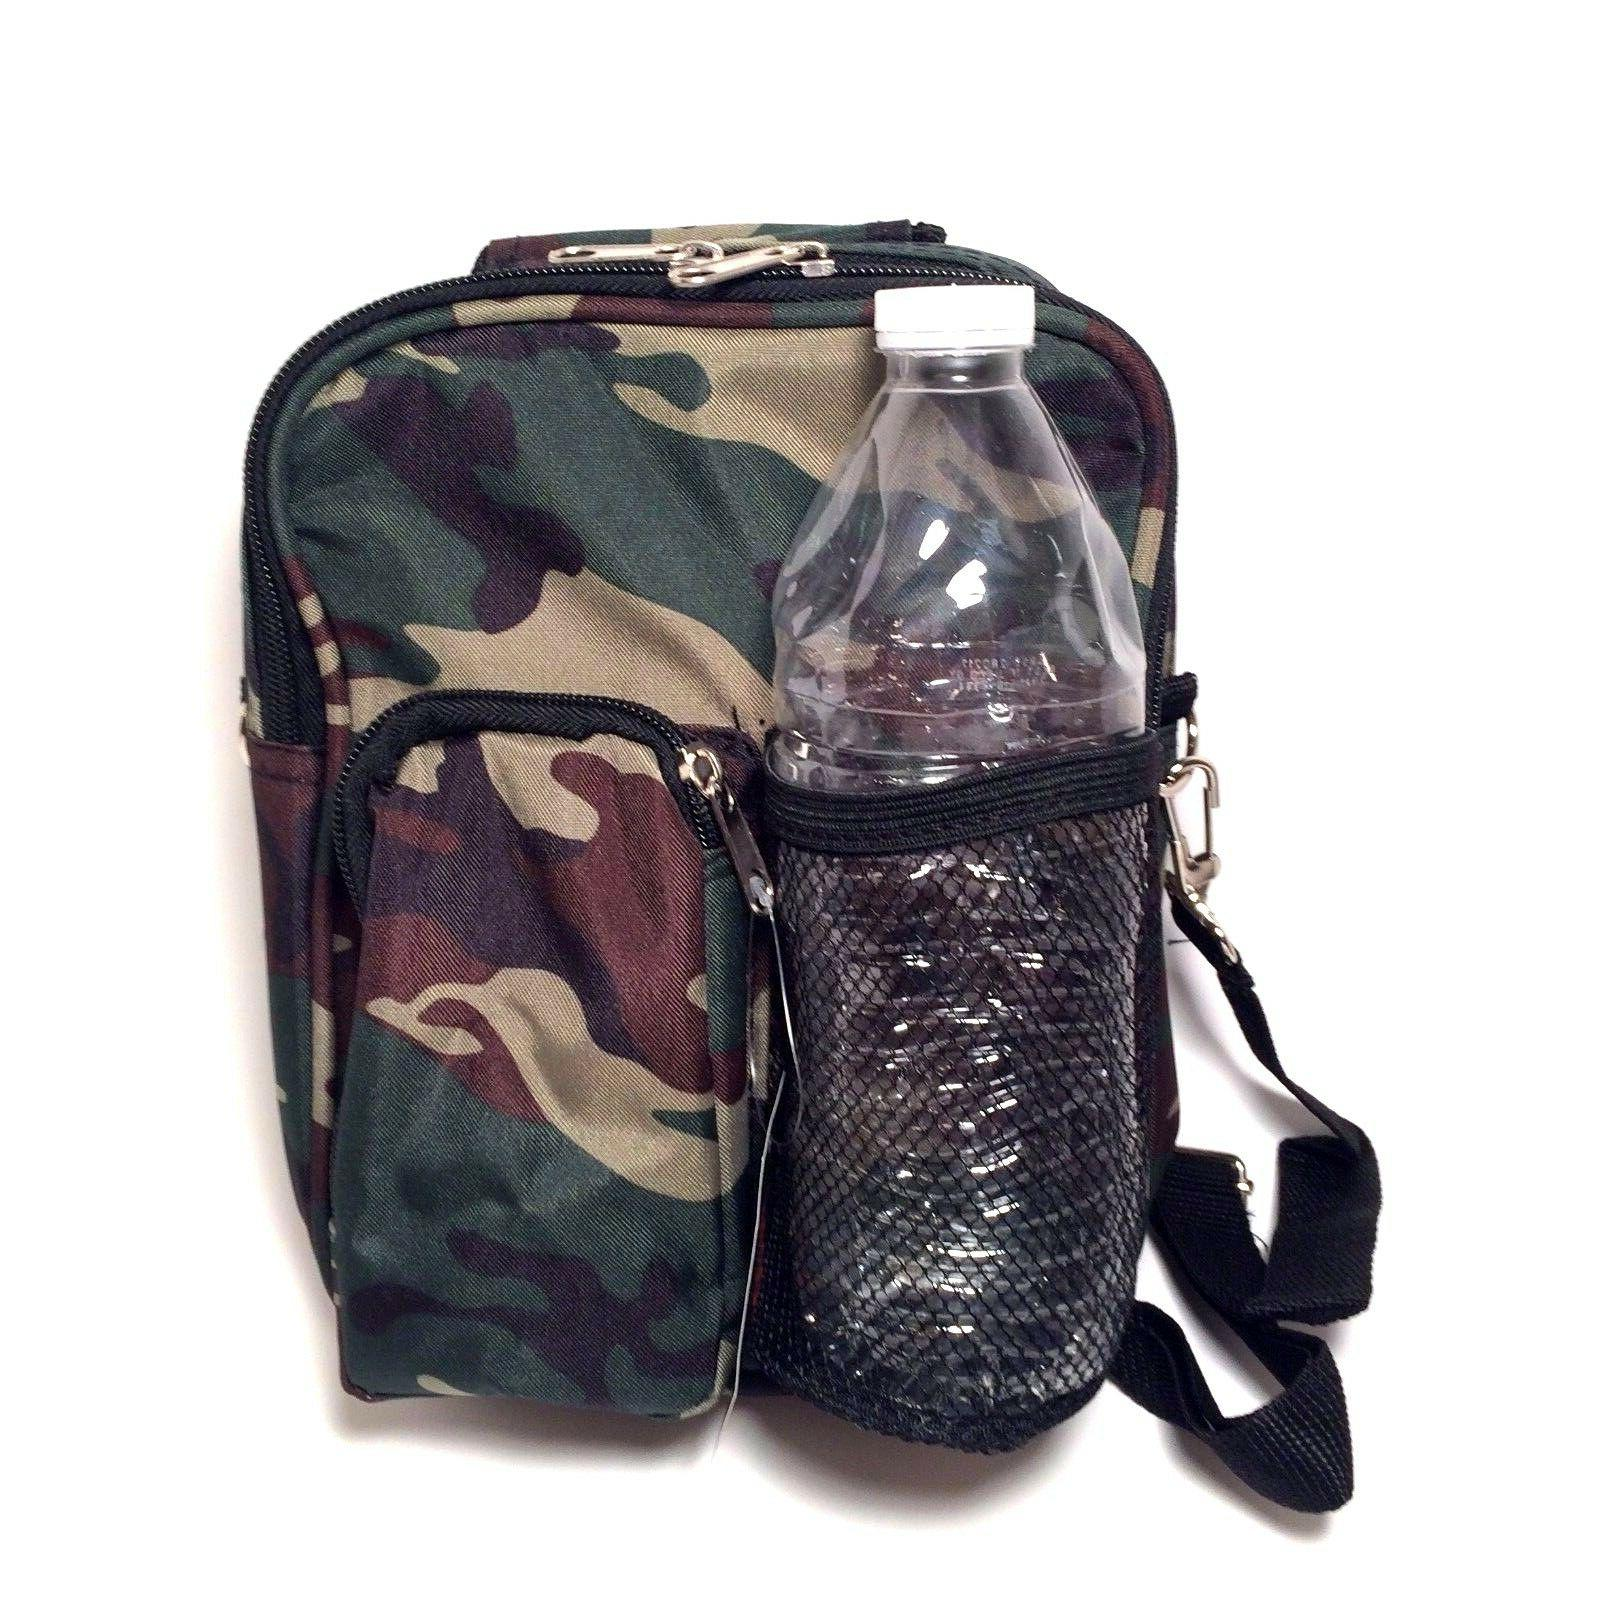 Camo Print Cross Body Daypack  Purse Lunch & Accessory Bag